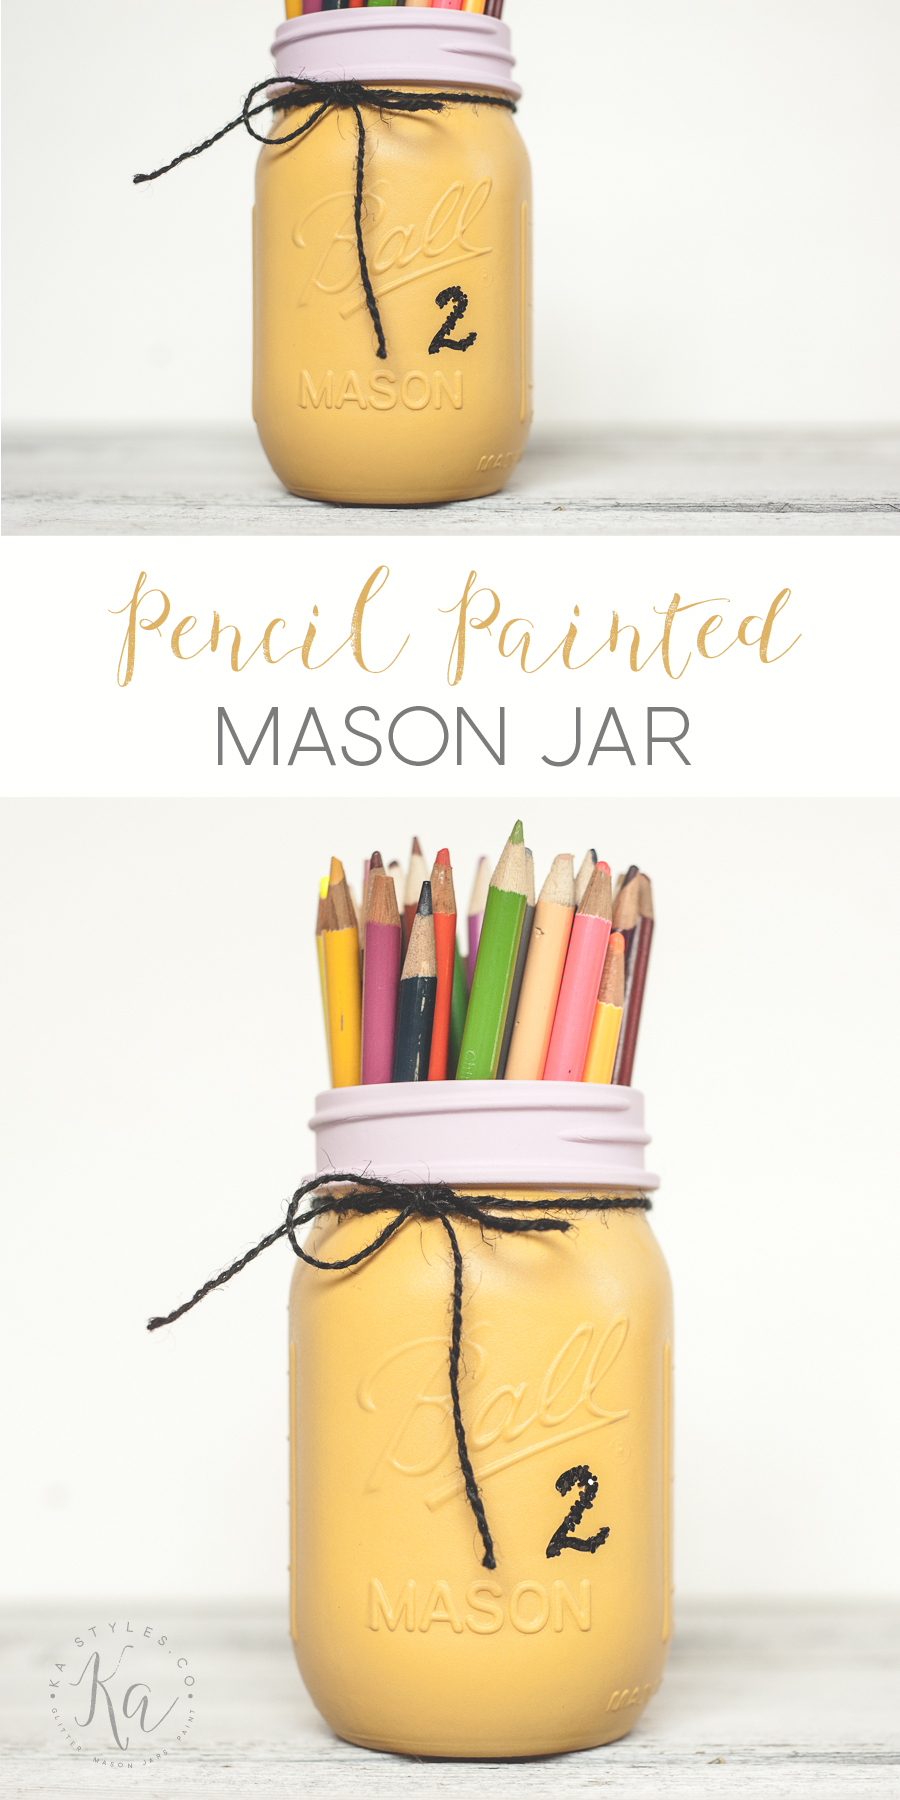 DIY Pencil painted mason jare perfect for a teacher or pencil artist. Using ckalky finish spray paint and a bit of glitter.